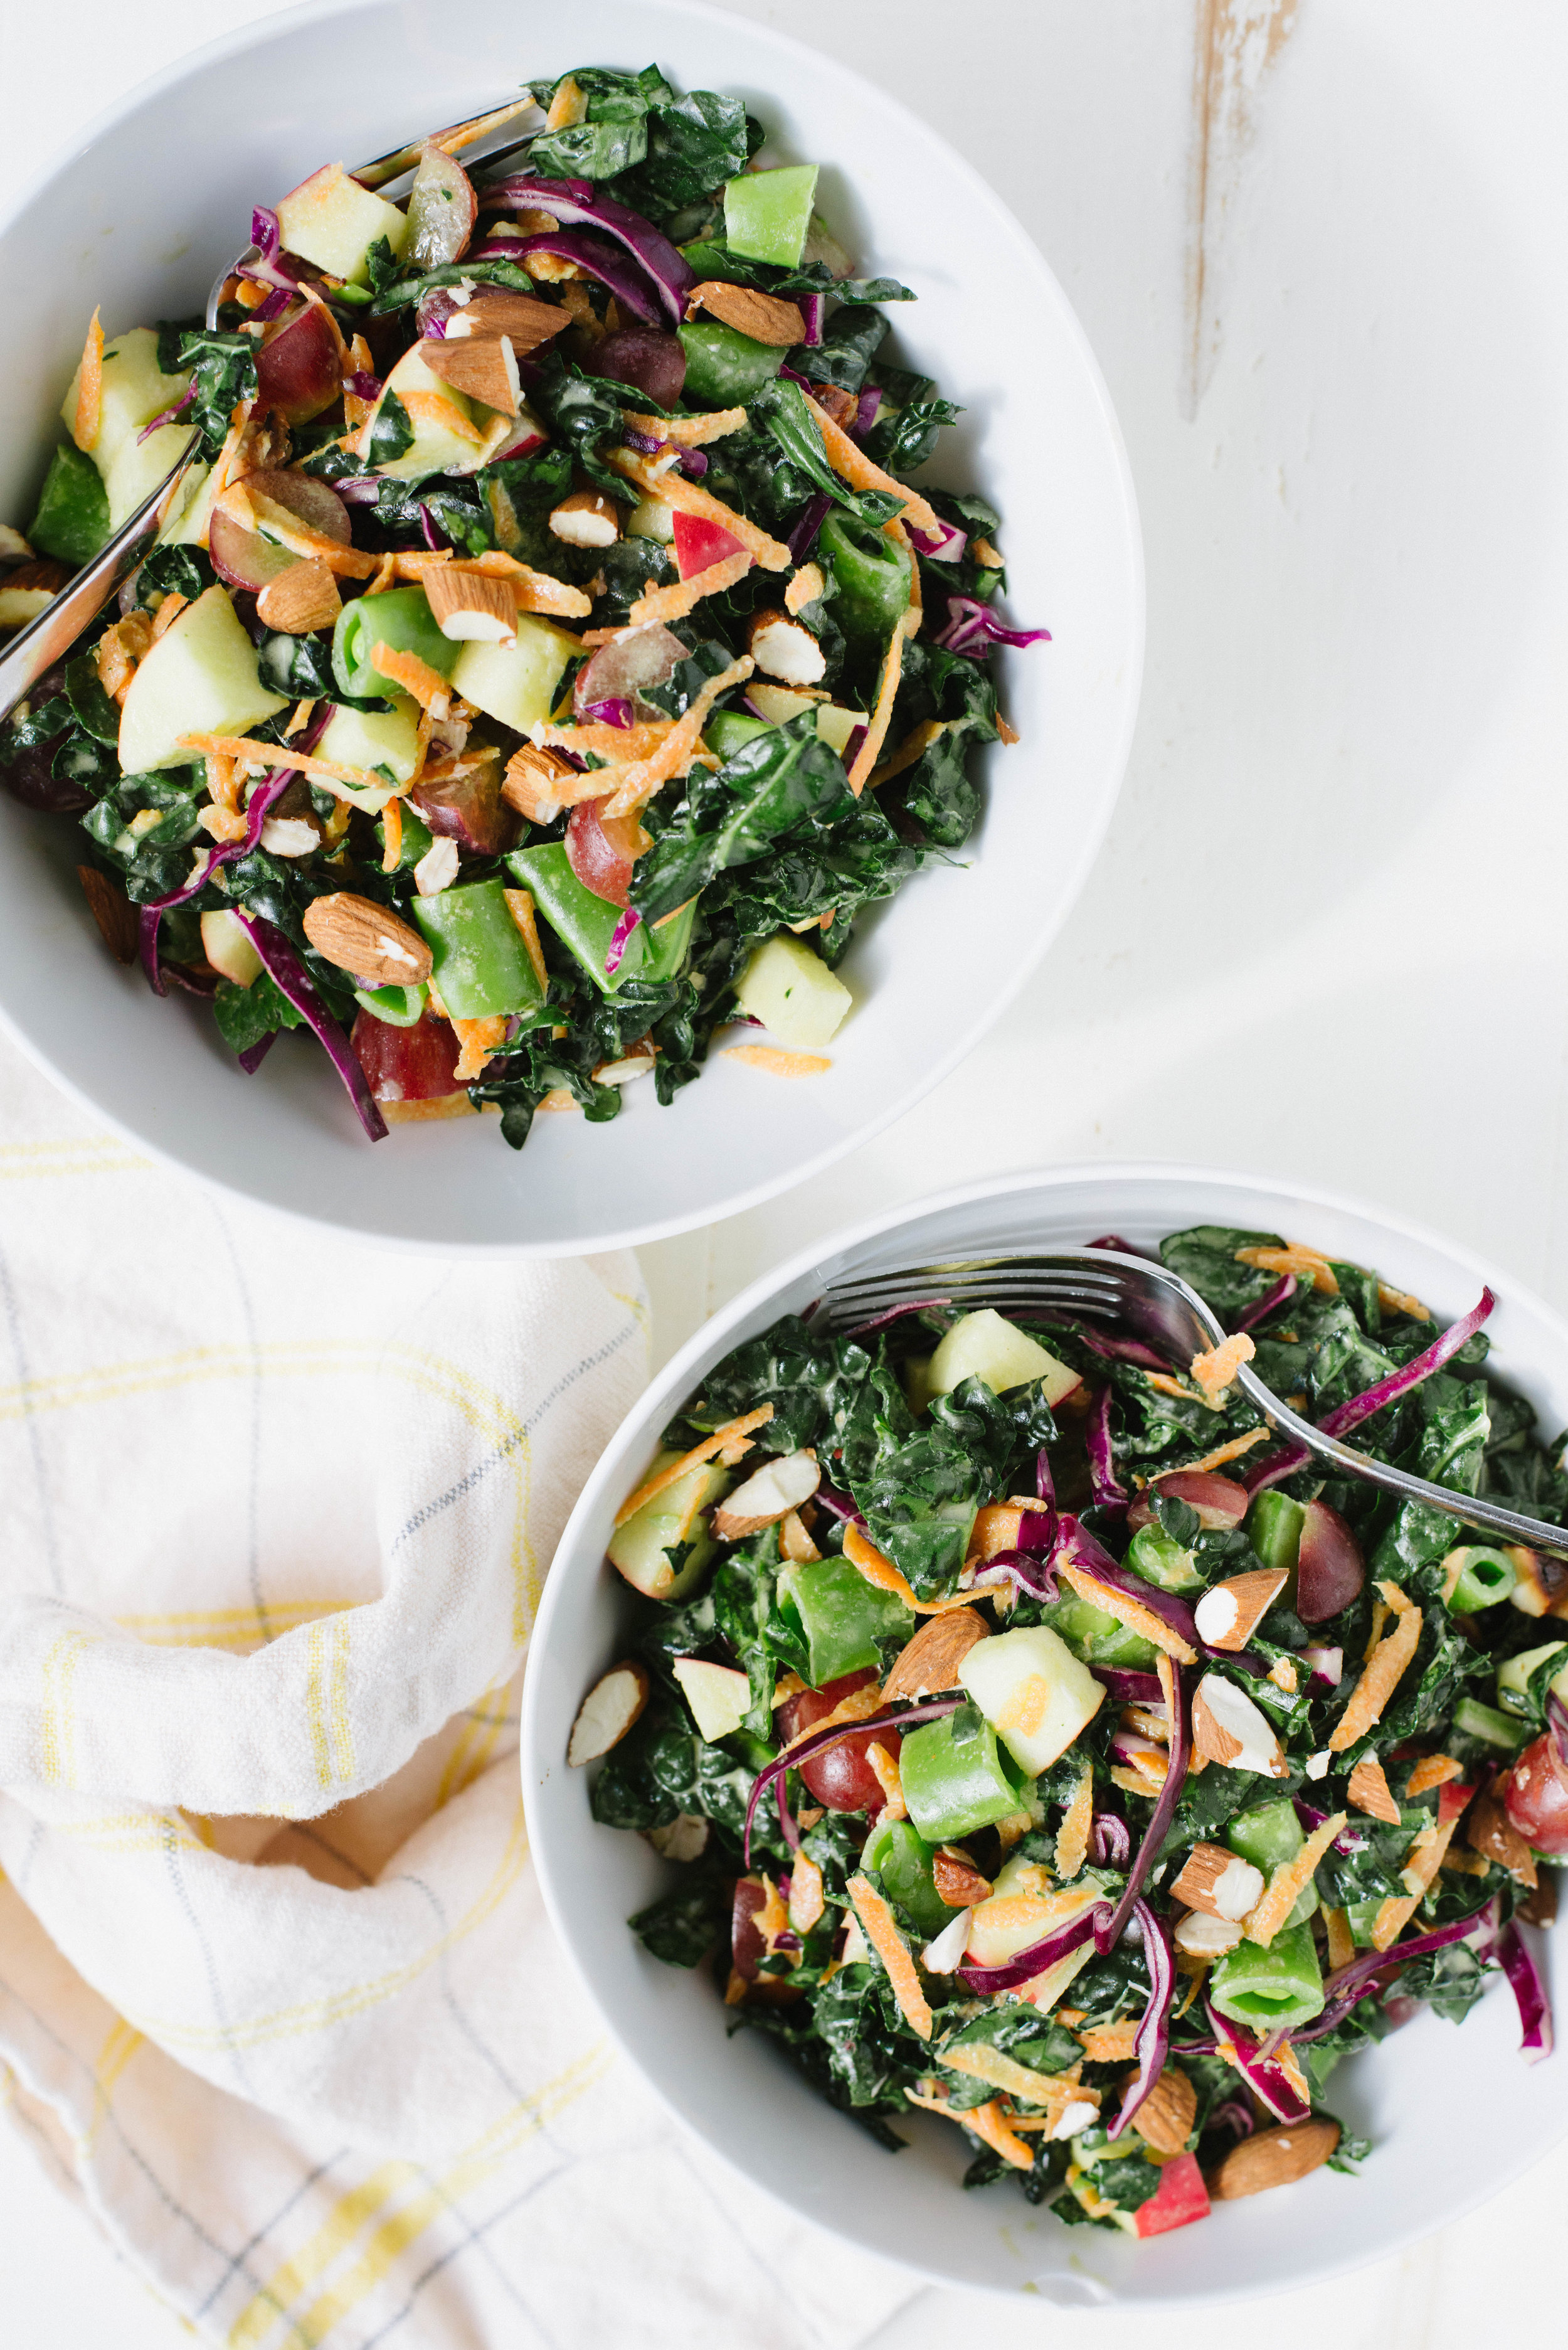 Easy to make ahead and packed with flavor, Chopped Kale Salad with Tahini Citrus Dressing is just the thing to pack for lunch, a picnic or a potluck.